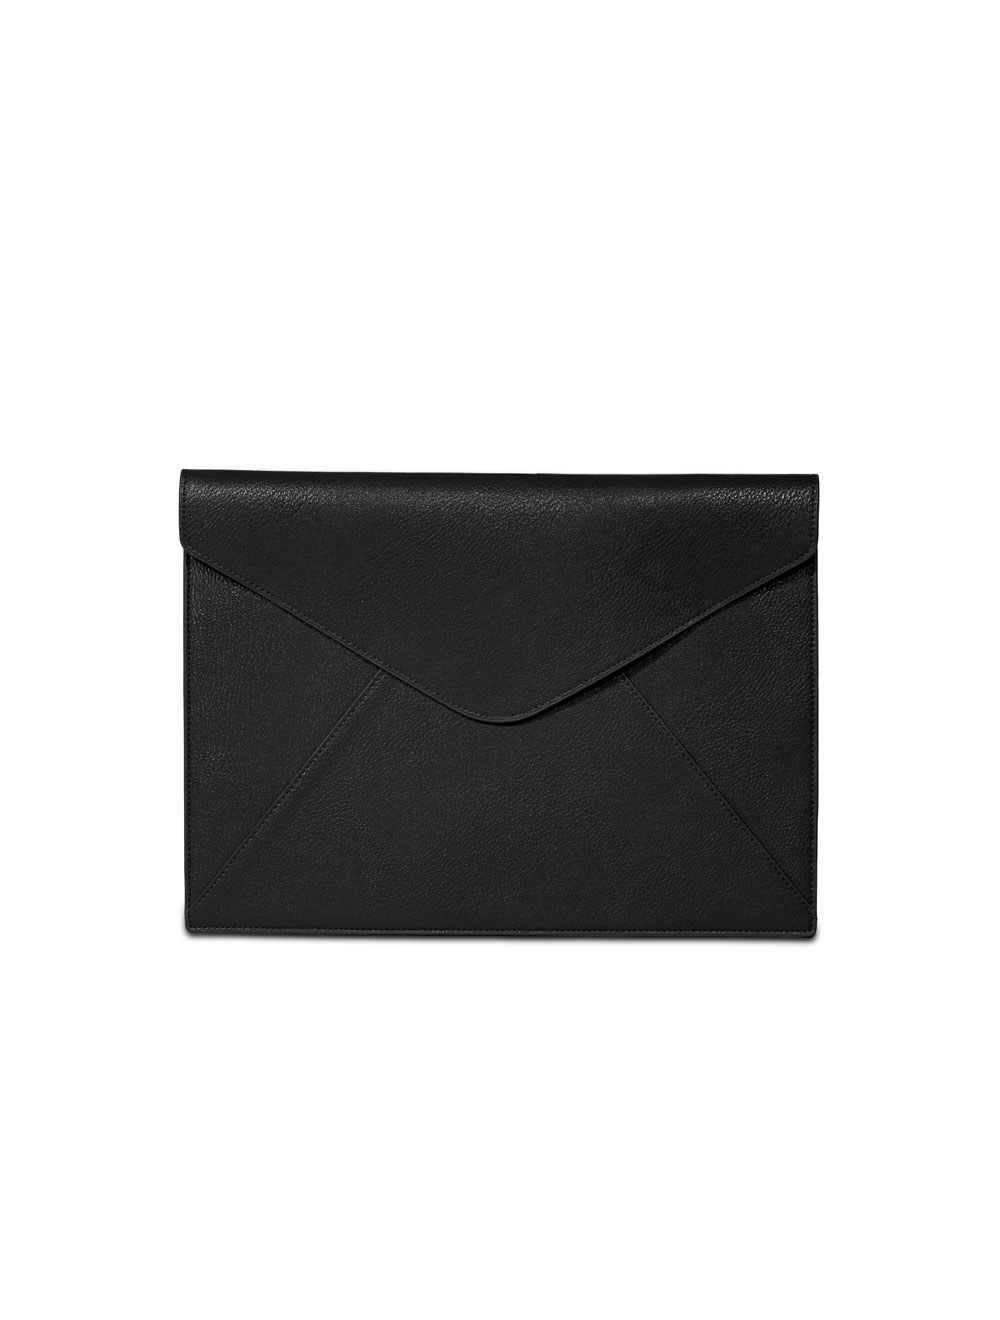 Document Holder Envelope A4 Fedor - Black